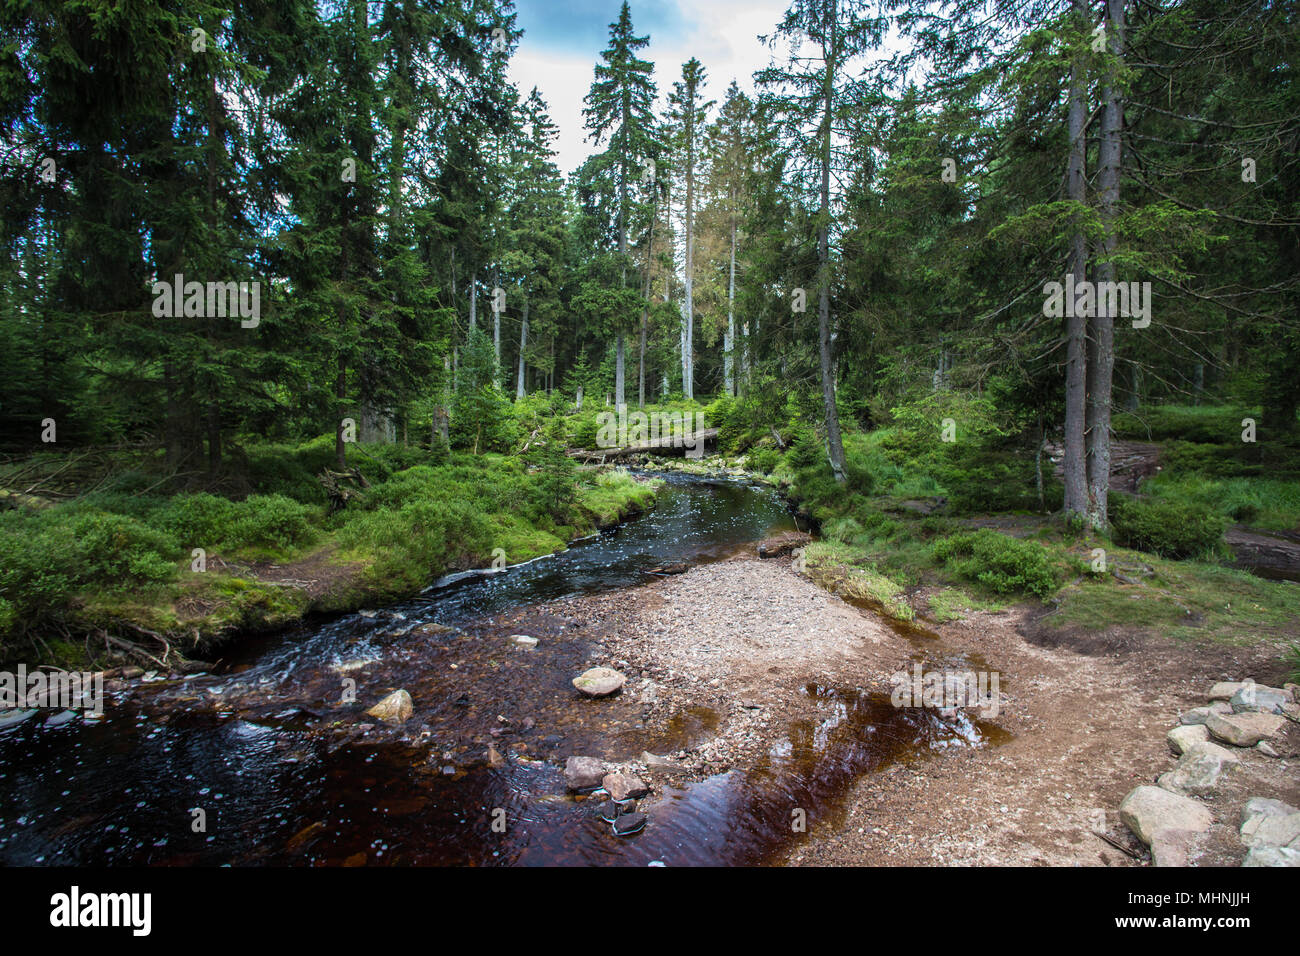 Water stream spring in green Harz mountain forest glade with coniferous trees at cloudy day in summer season - Stock Image